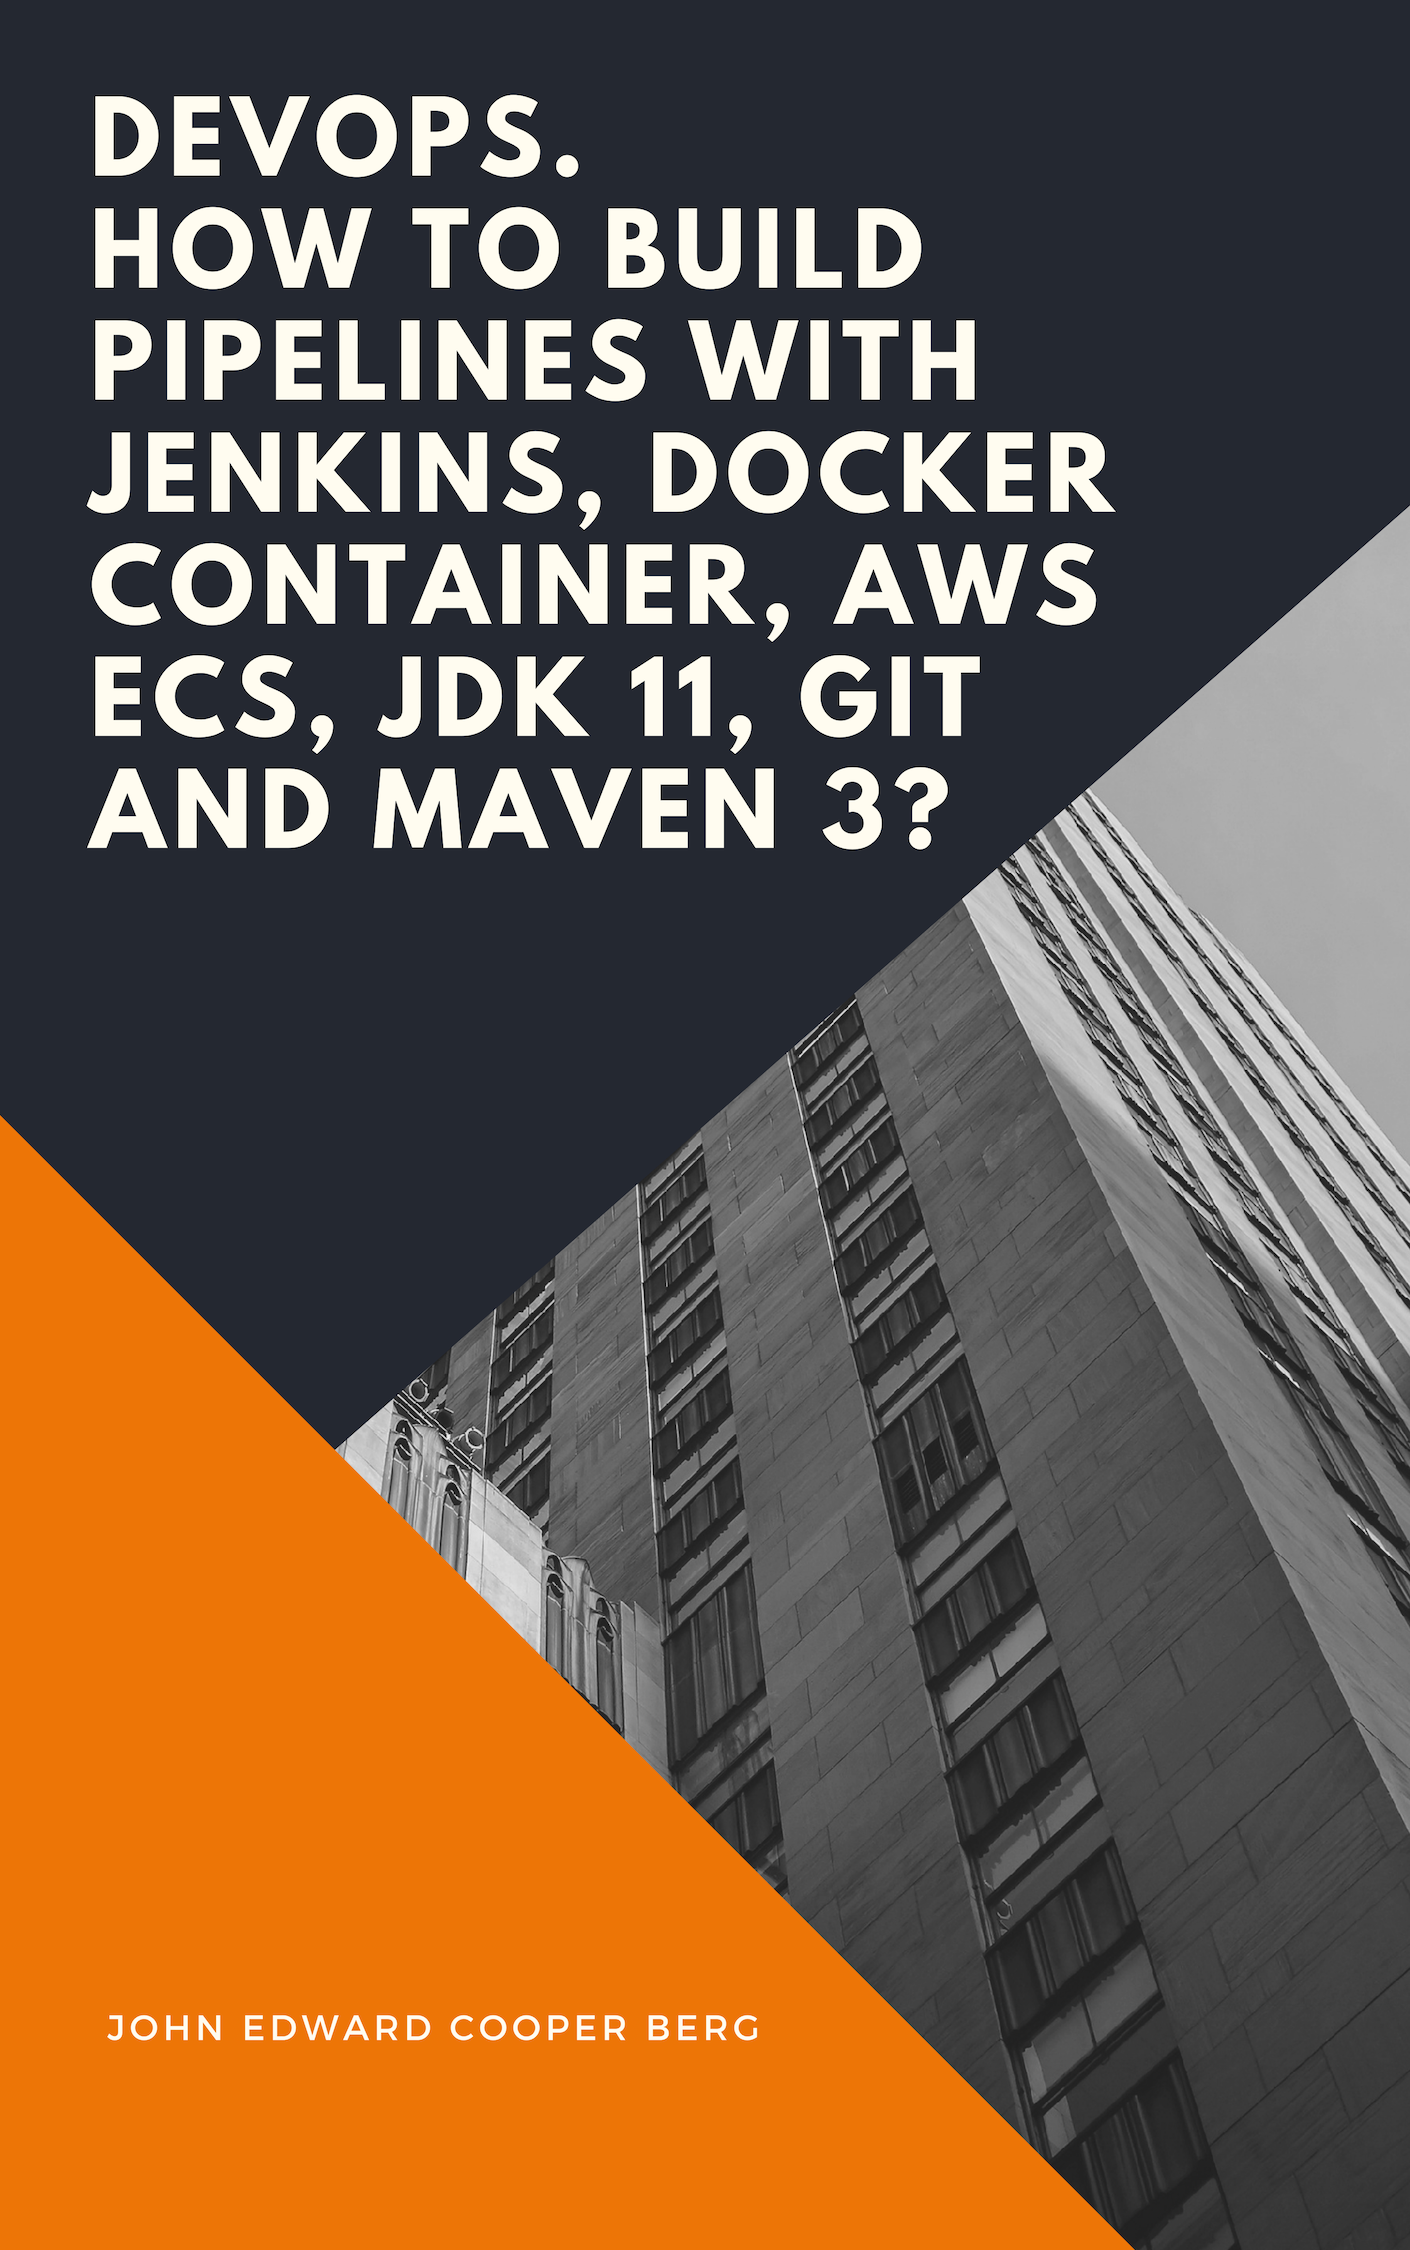 DevOps  How to build pipelines with Jenkins, Docker container, AWS ECS, JDK  11, git and maven 3?, an Ebook by John Edward Cooper Berg